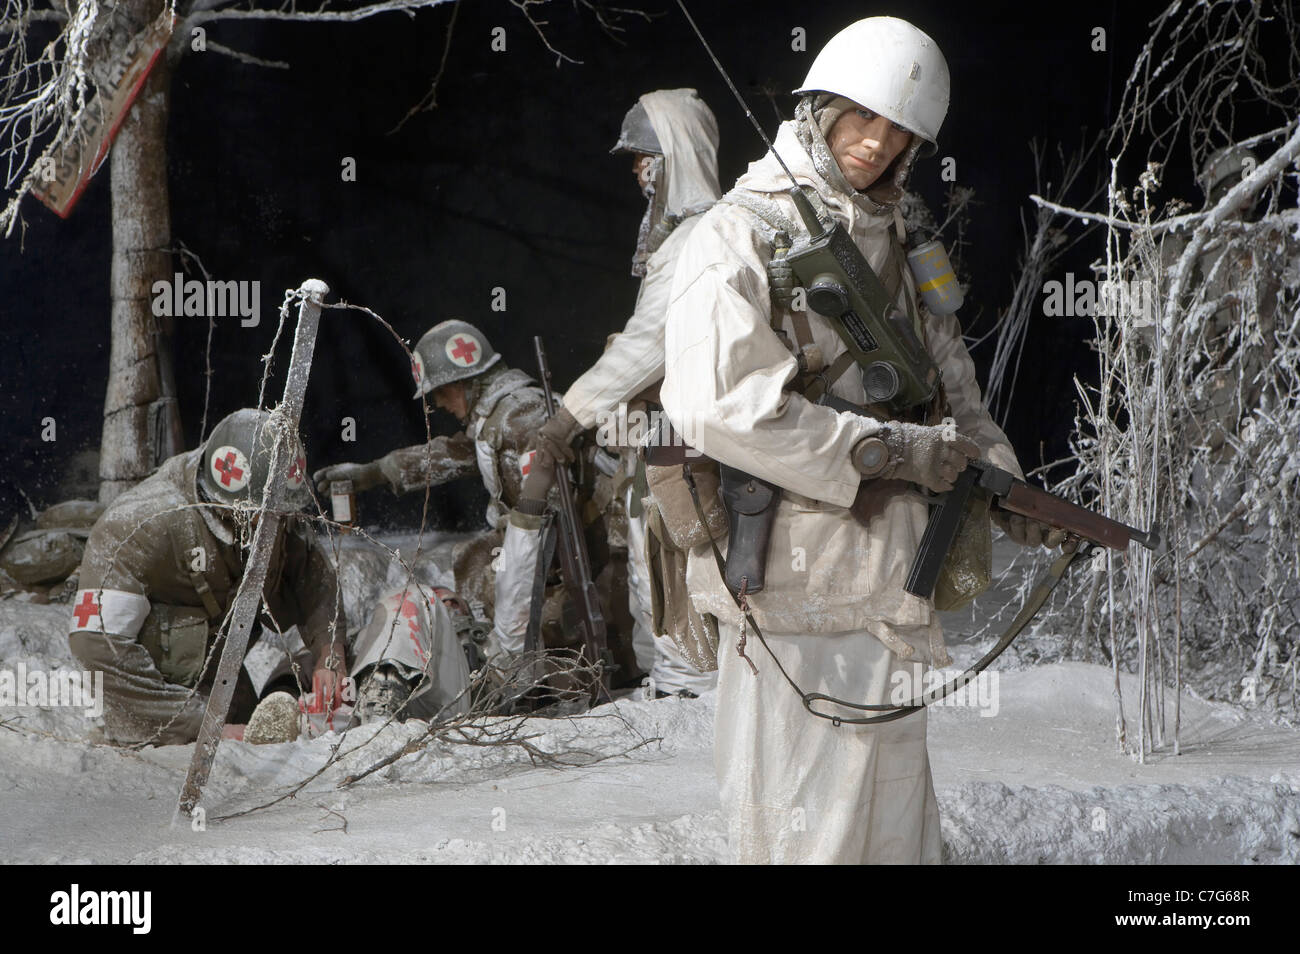 Luxembourg Country. Battle of the Bulge Museum in Diekirch.Winter battle scene, snow, medic and US soldiers. - Stock Image